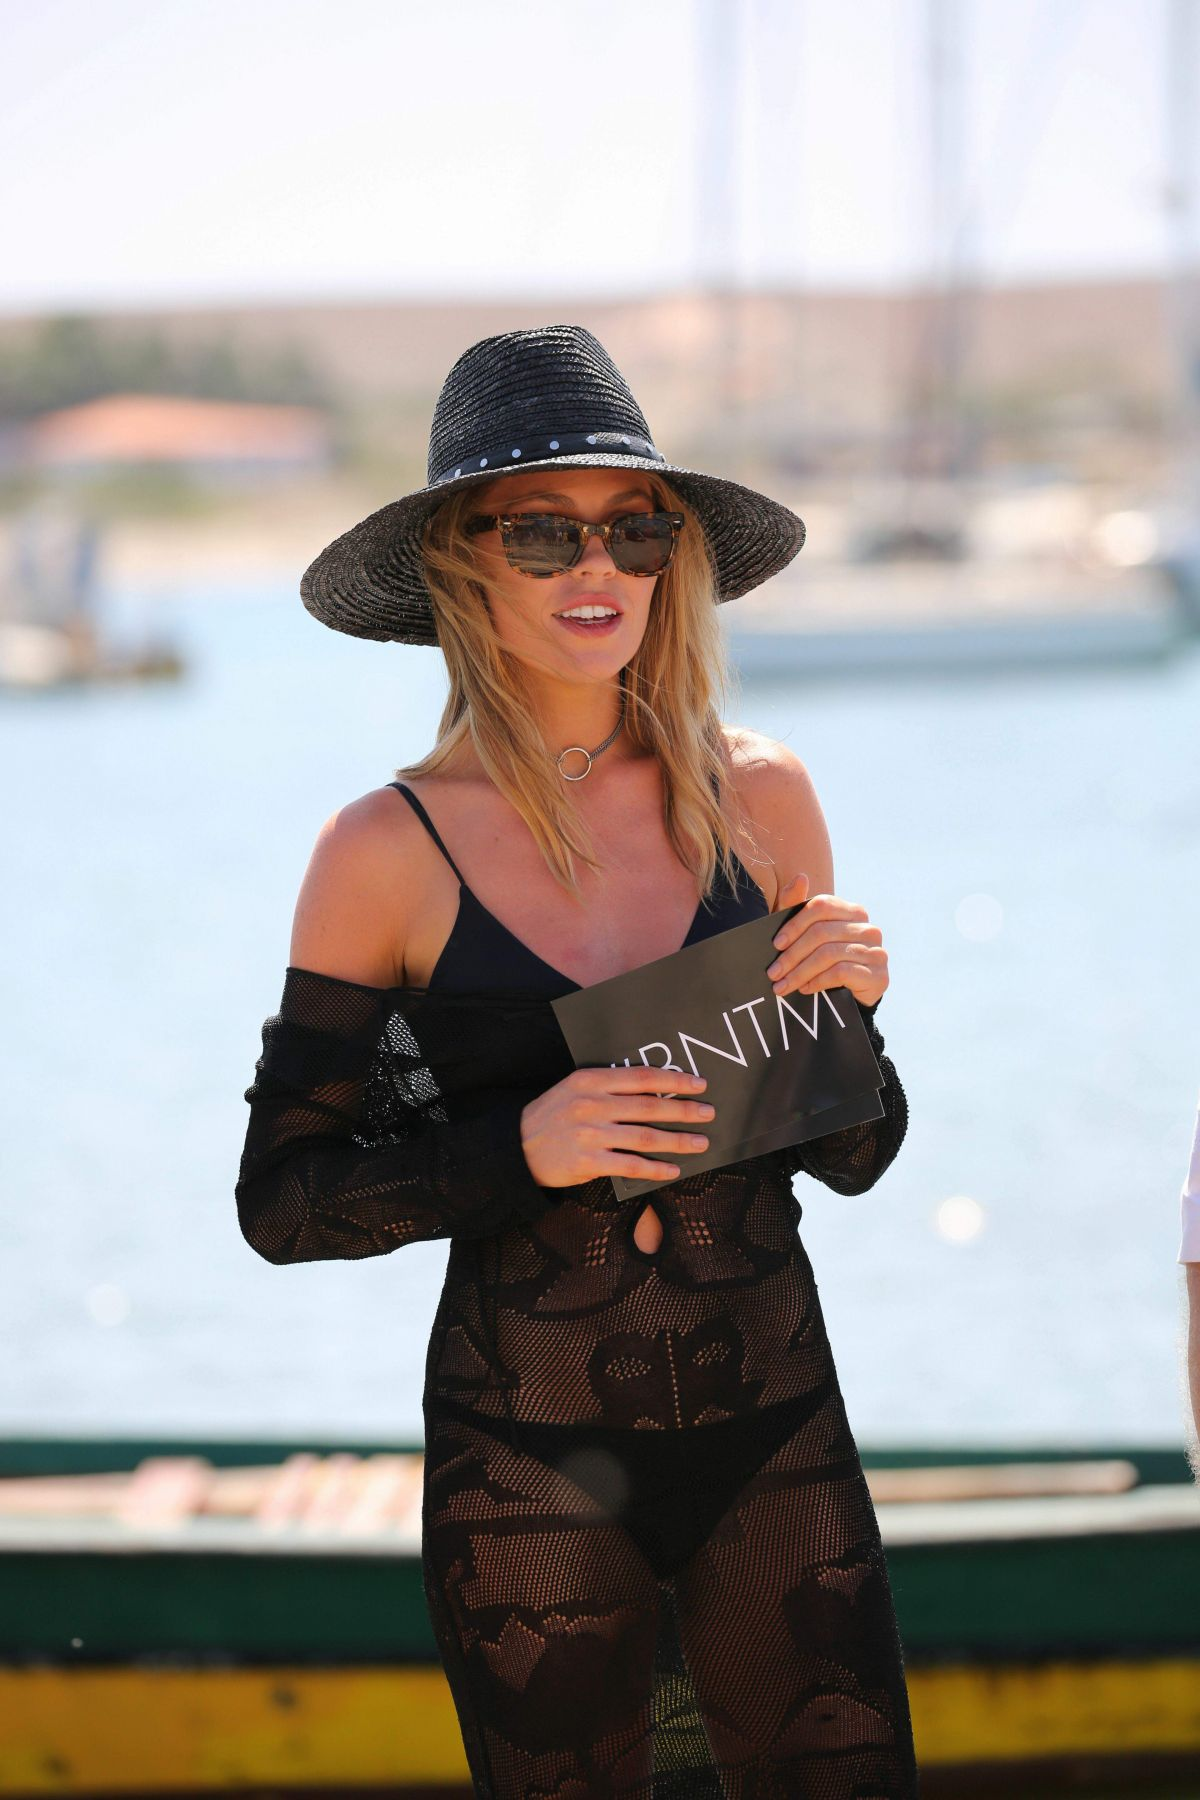 ABIGAIL ABBEY CLANCY in BIkini at a Yacht on the Set of Britain's Next Top Model 10/26/2016